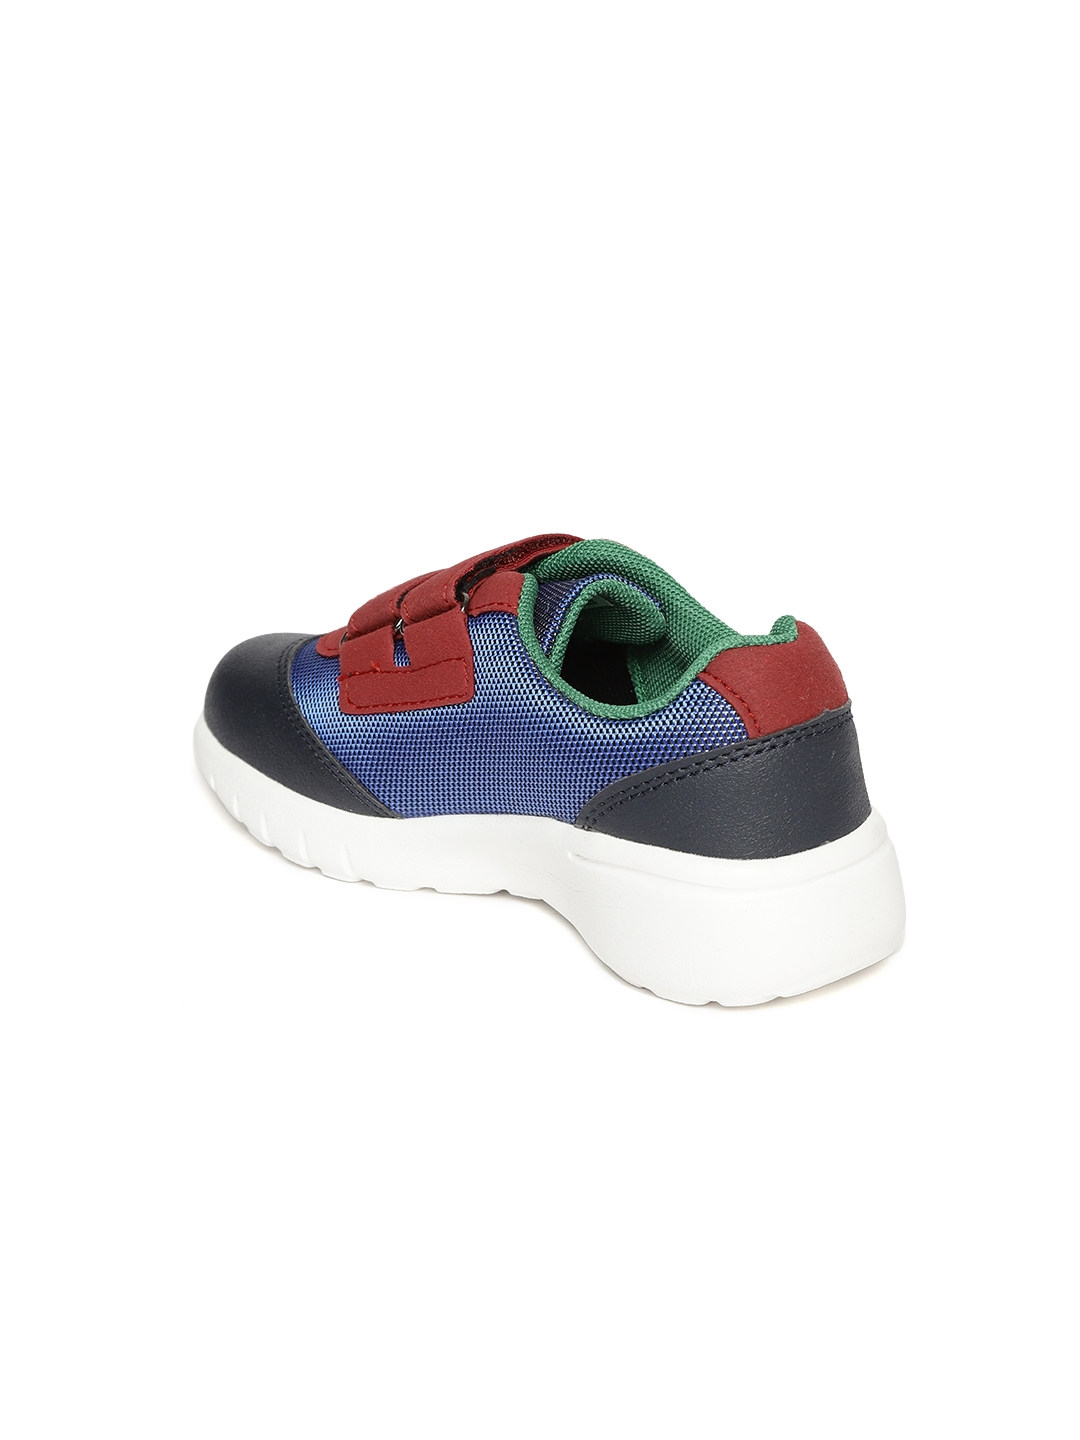 f977f4e69425 Buy United Colors Of Benetton Kids Blue   Red Woven Design Sneakers ...